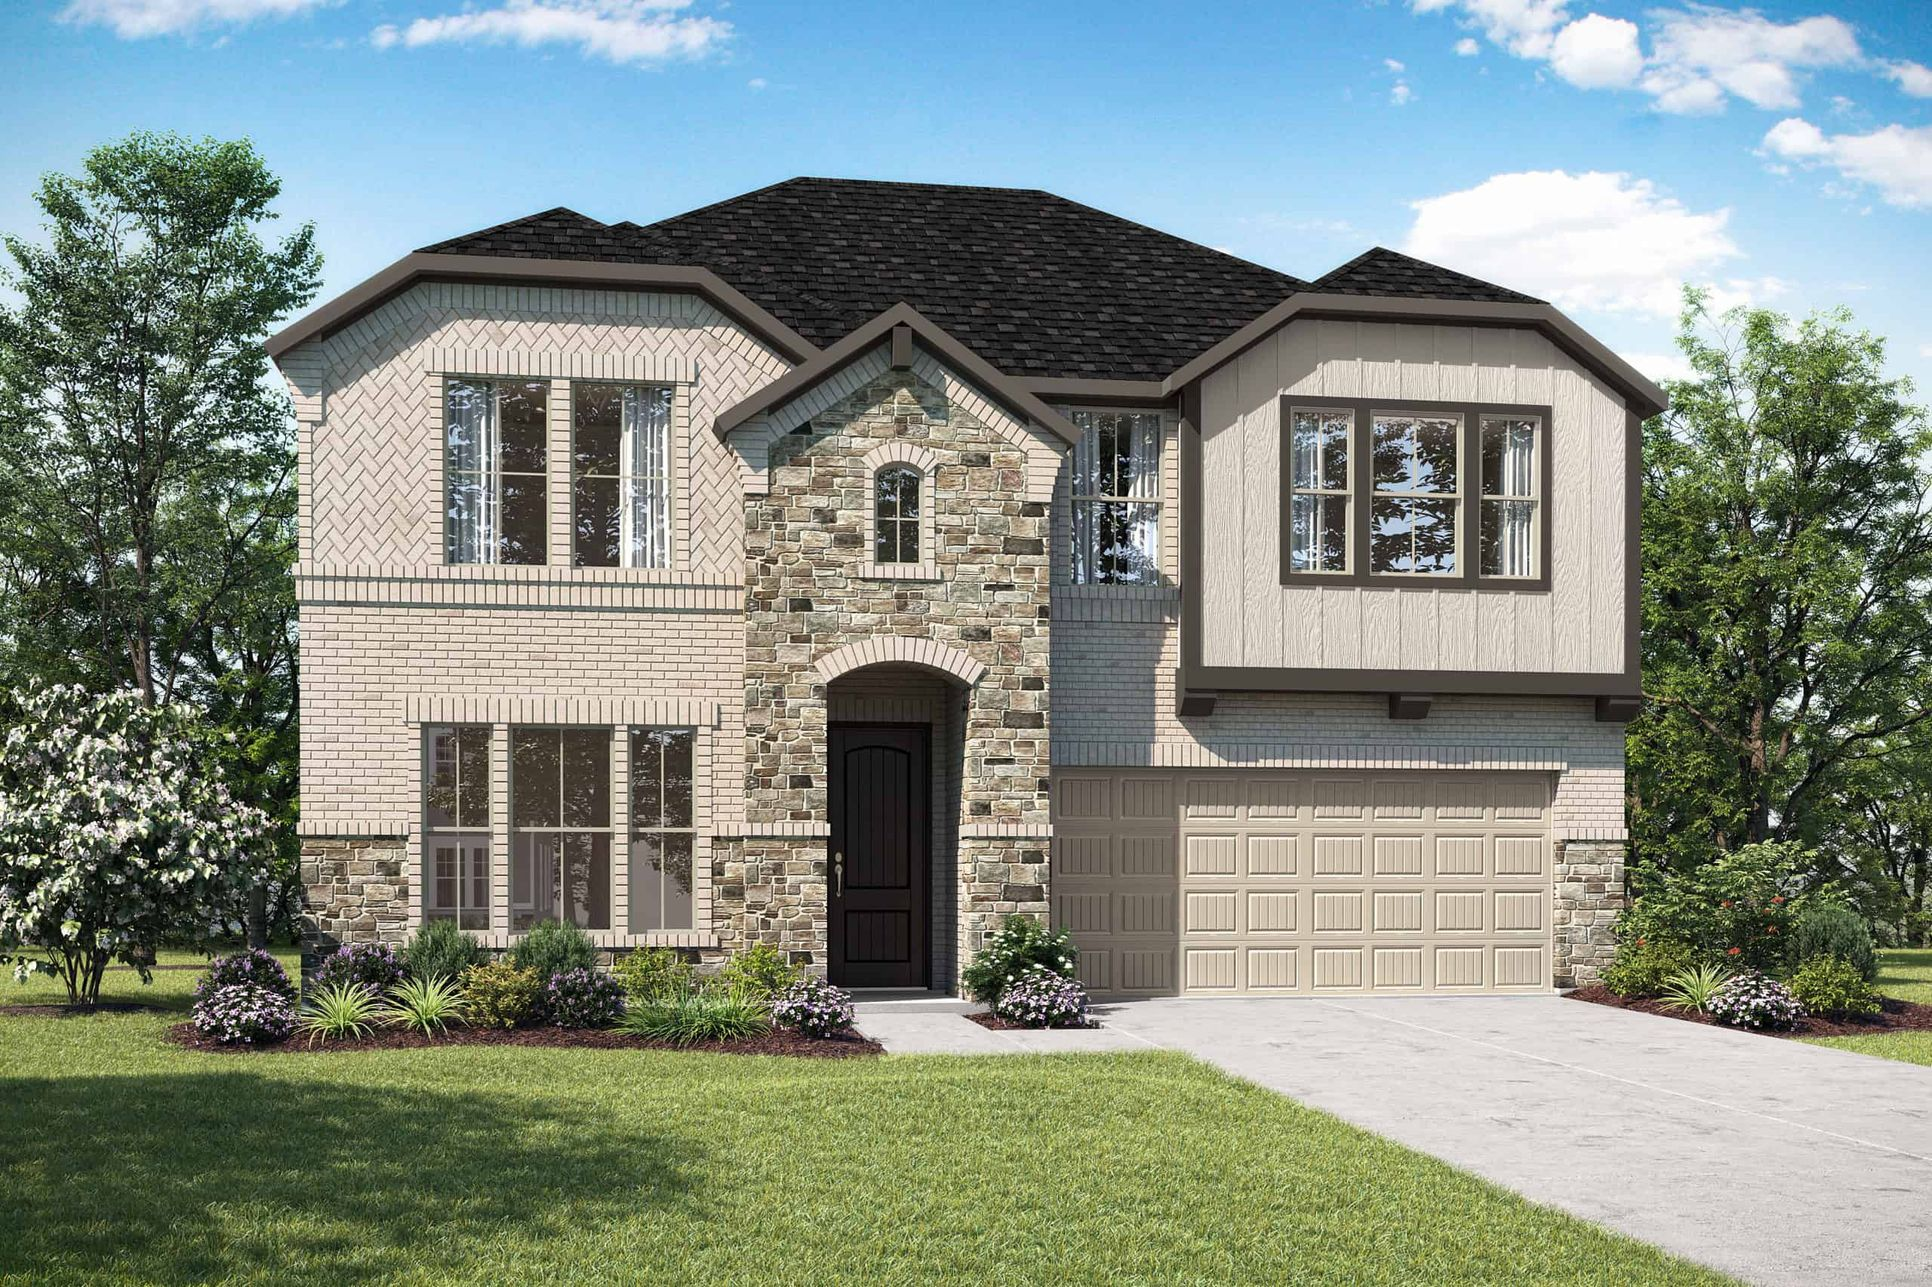 Elevation E:Elevation E is a two story cottage inspired home design with brick and stone featuring an arched ent